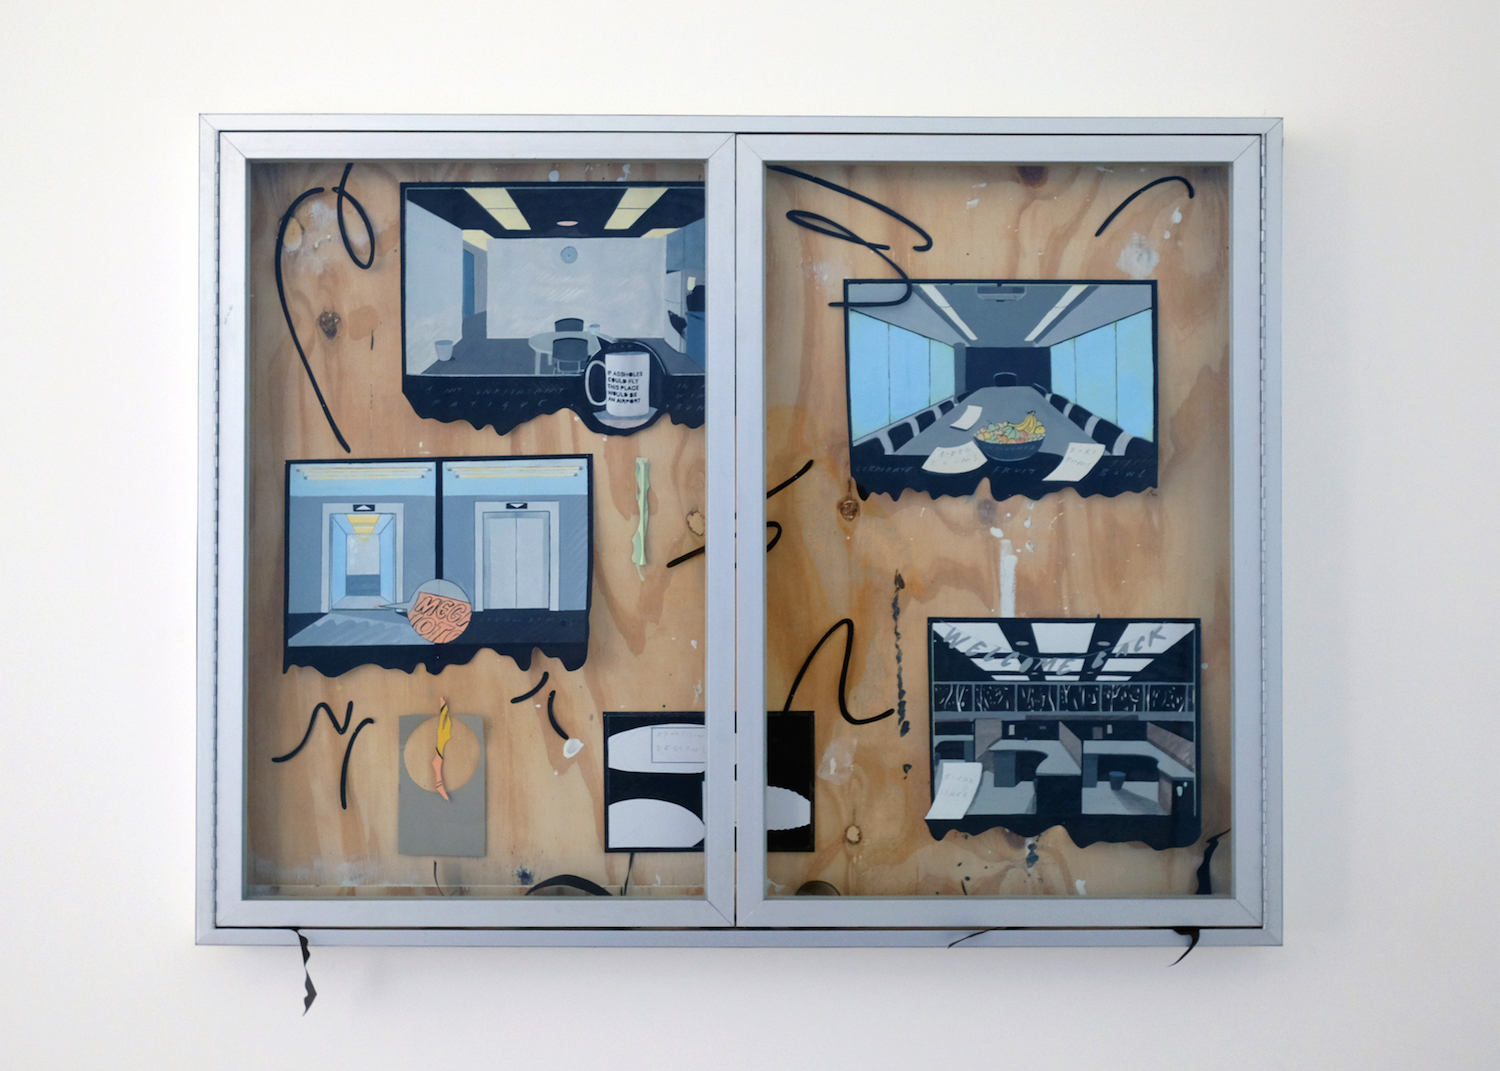 Charlie Godet Thomas, Composed and Improvised Poem, 2020. Acrylic paint and pencil on paper, paper fragments and pins in glazed aluminium cabinet, wood. 130 x 100 x 9 cm.